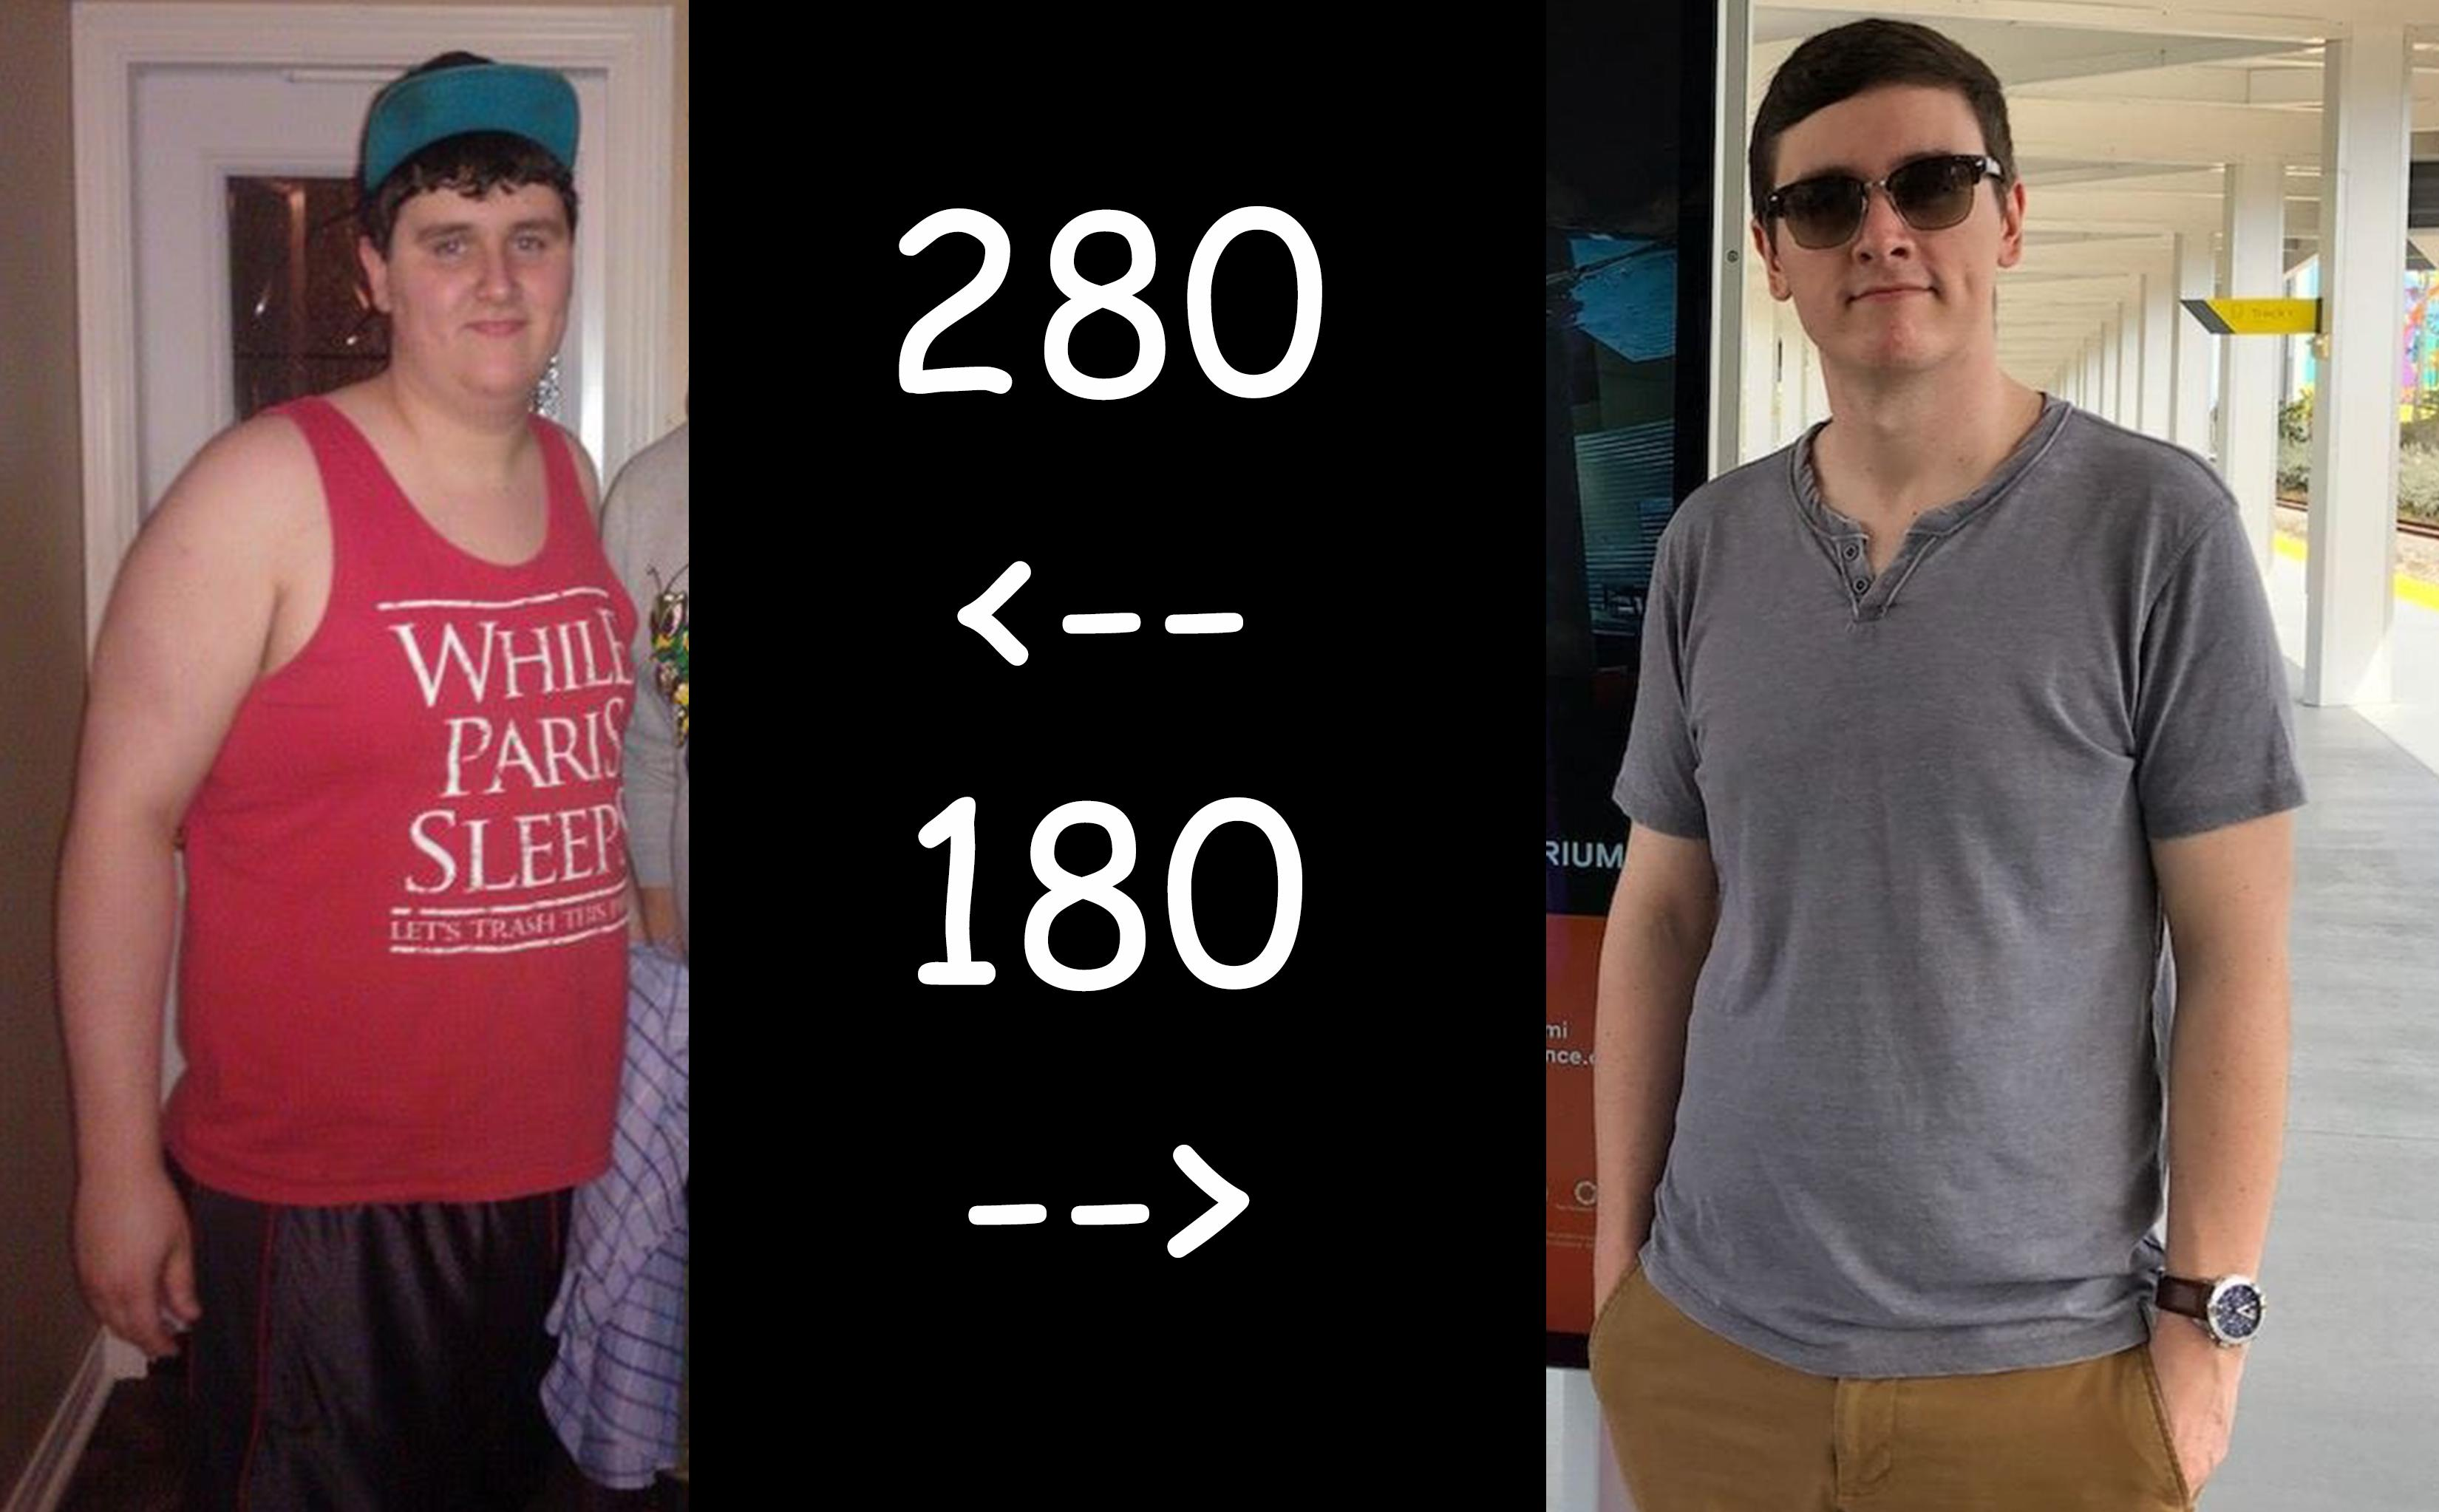 [Image] lost 100 pounds in just under 2 years. You can do it too. I know you can. Trust me, the long journey is worth it.